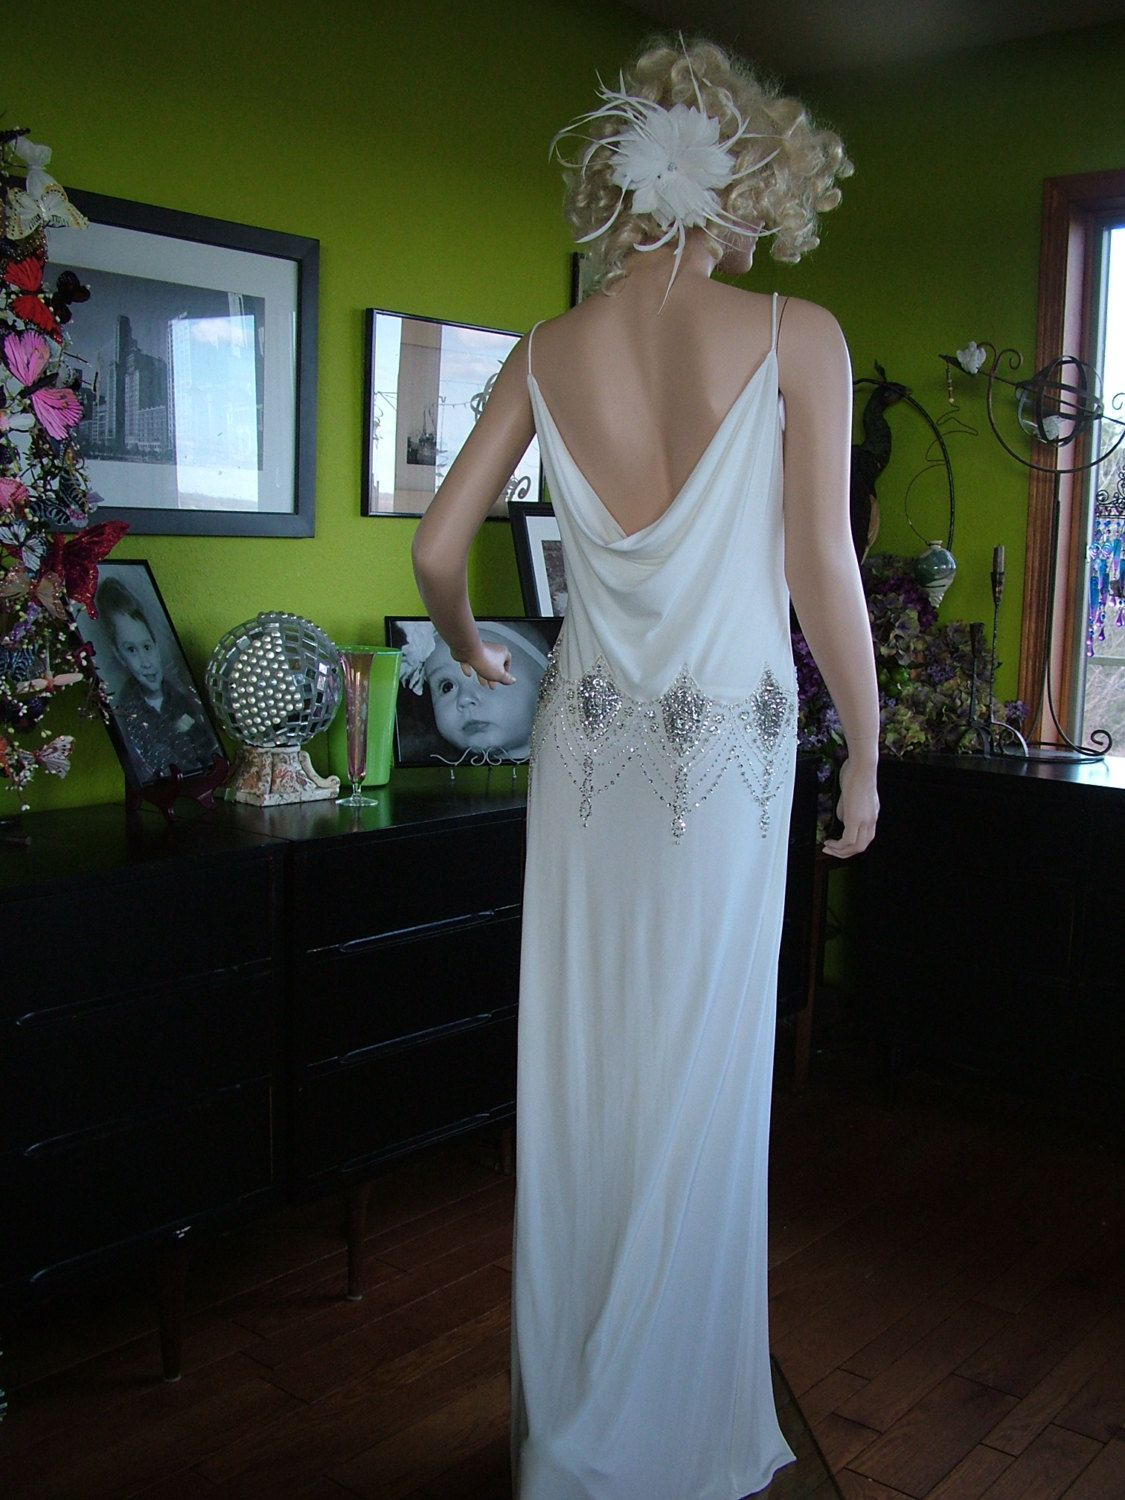 Great Gatsby 1920s flapper wedding dress alternative wedding dress ...